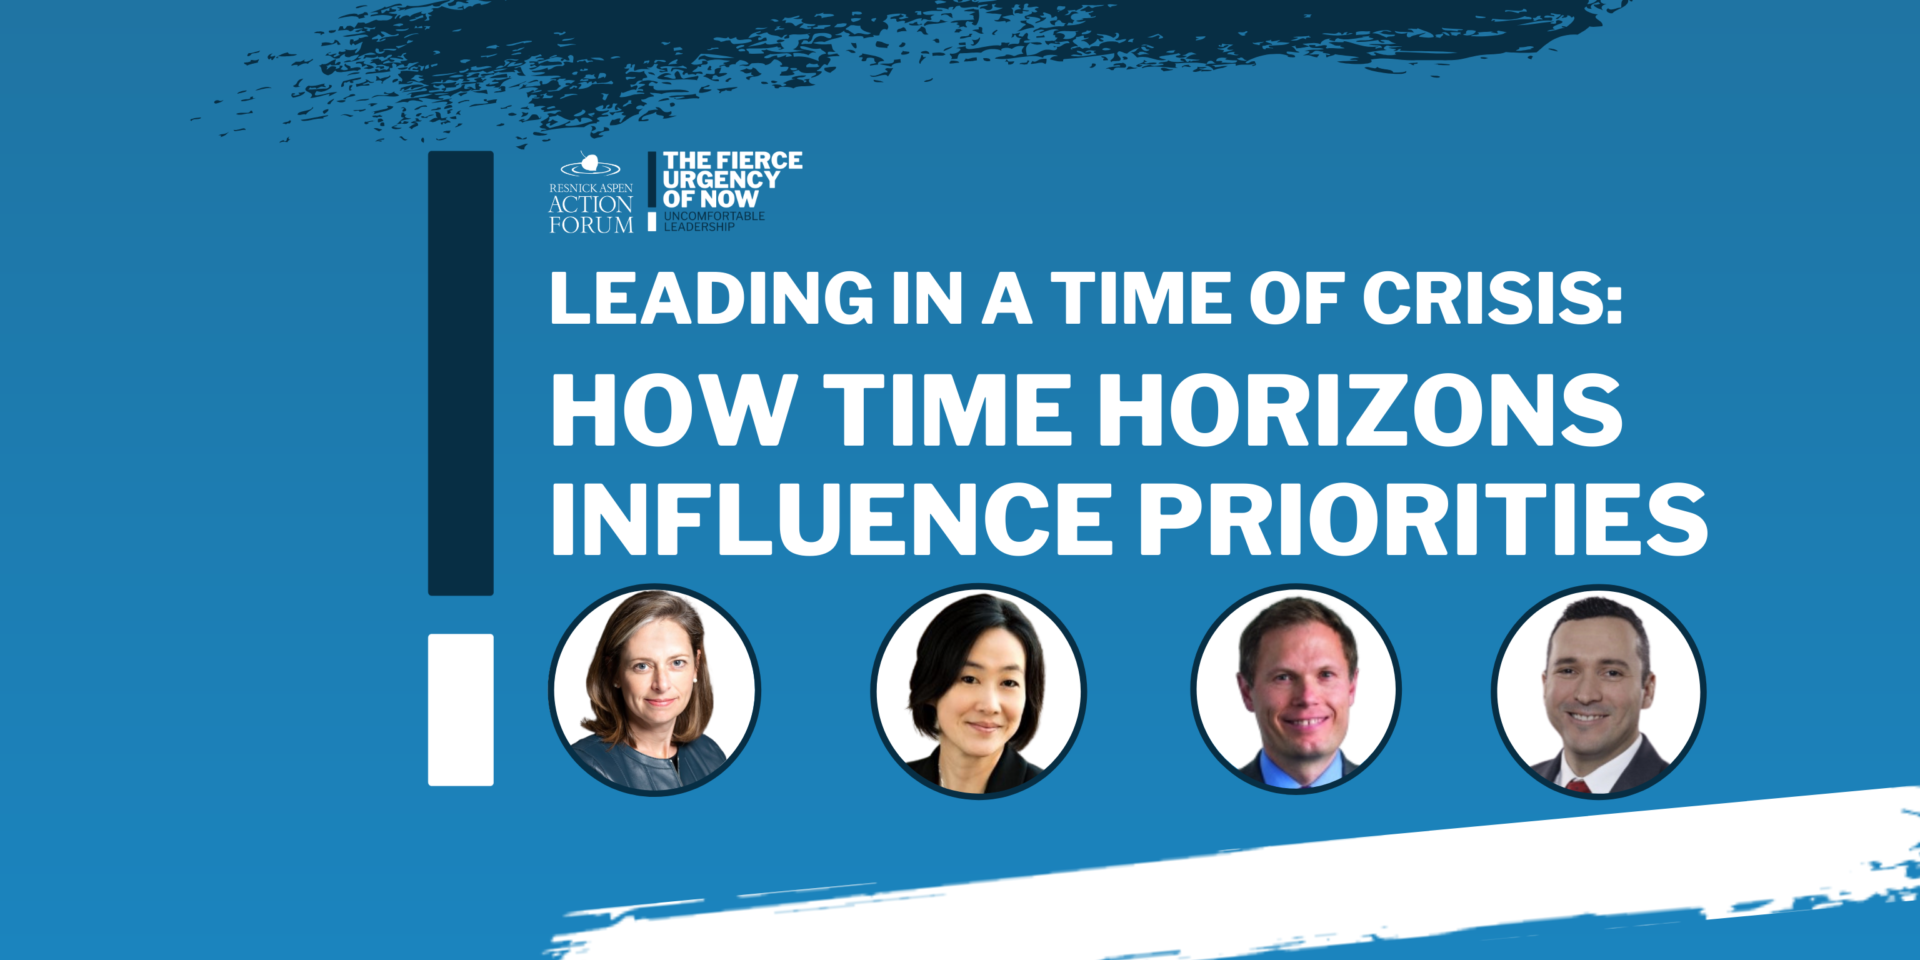 Leading in a Time of Crisis: How Time Horizons Influence Priorities